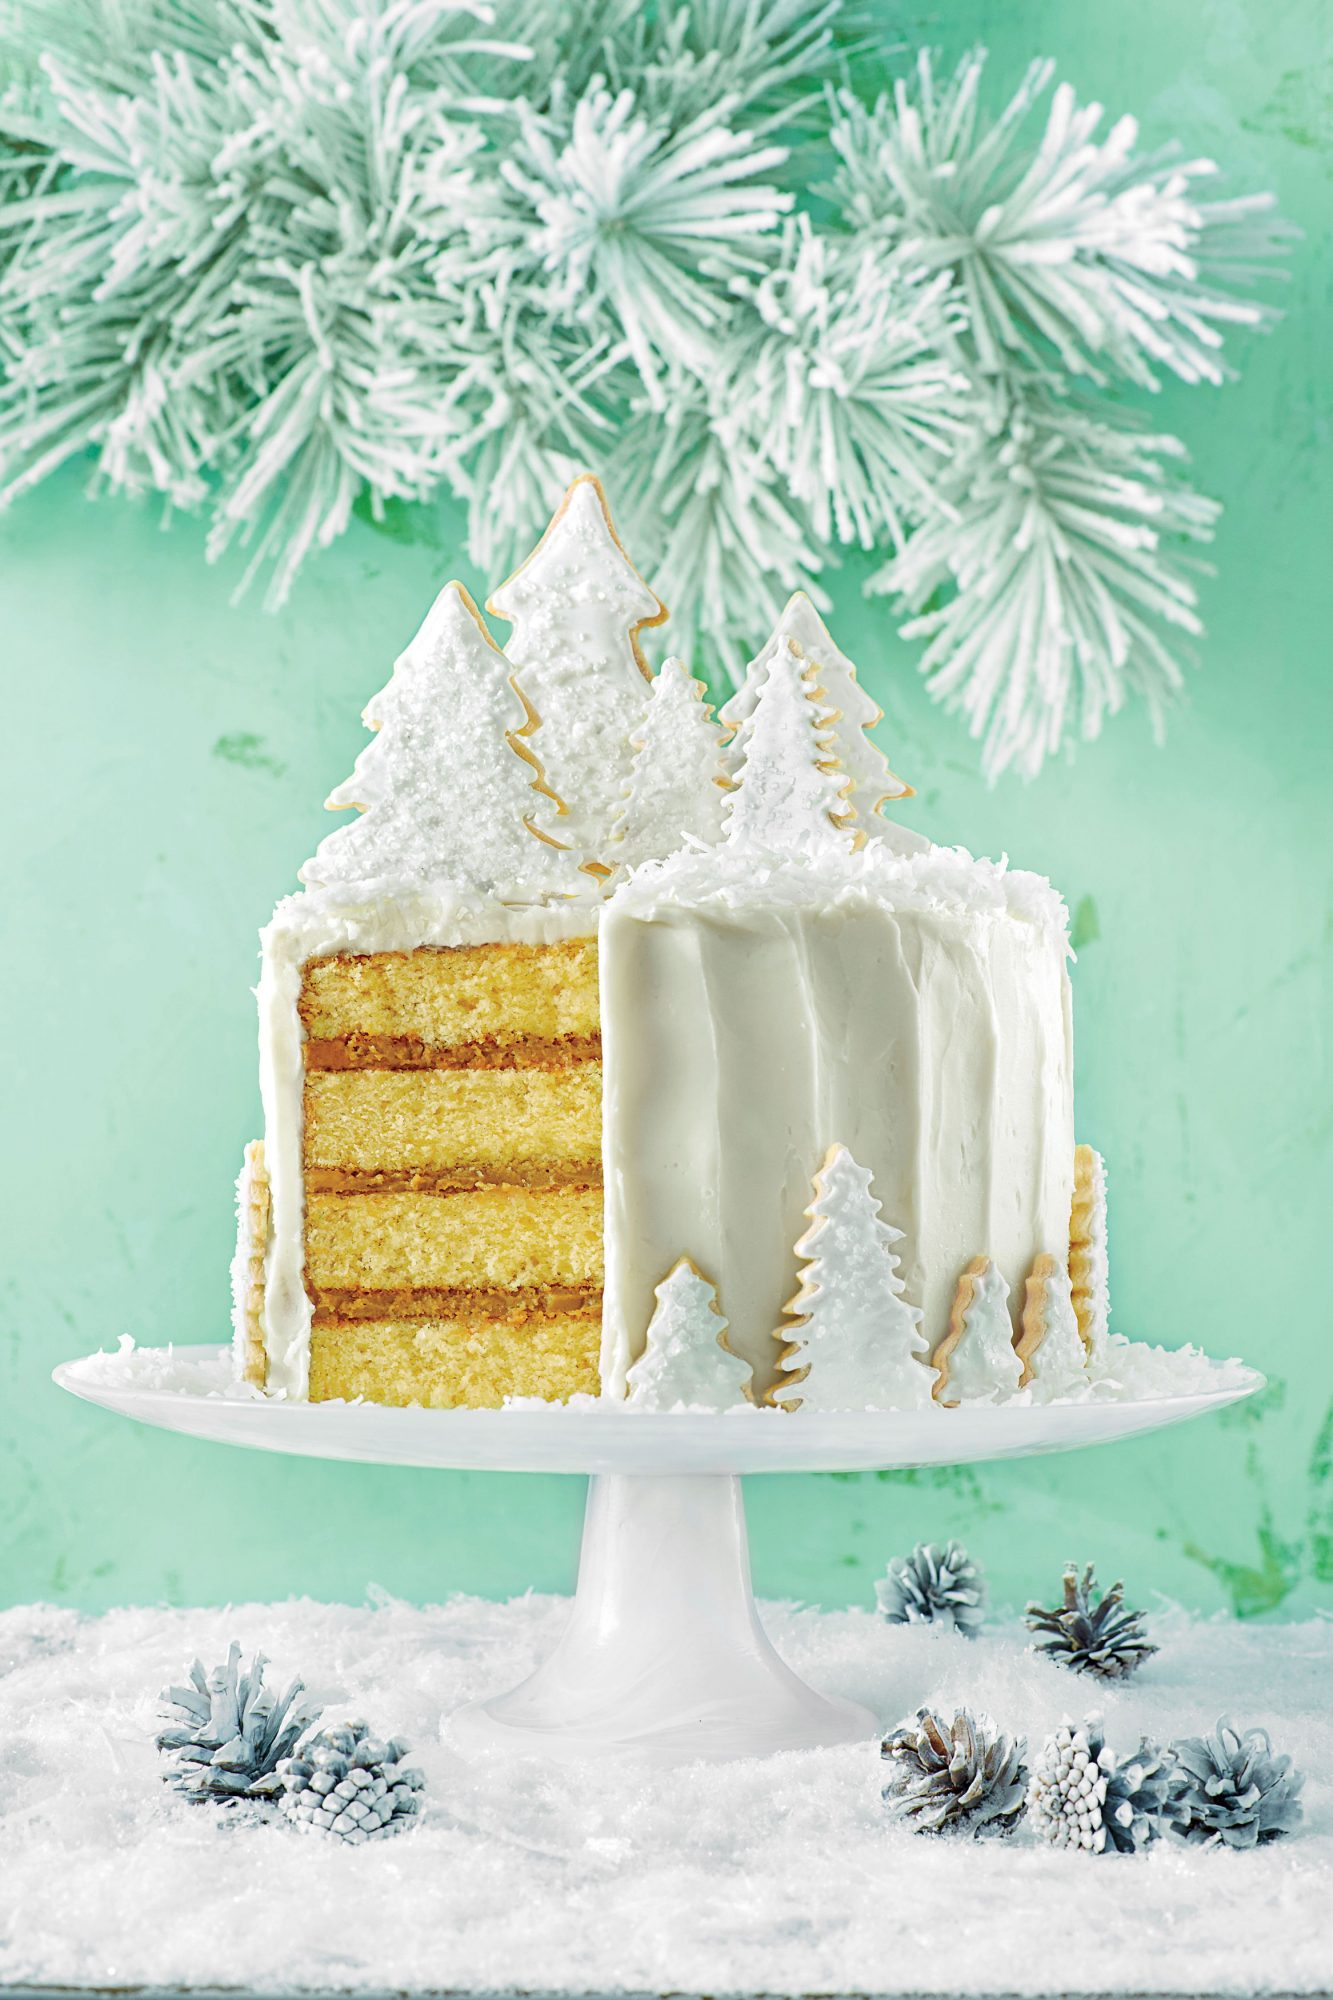 sl-Coconut Cake with Rum Filling and Coconut Ermine Frosting image